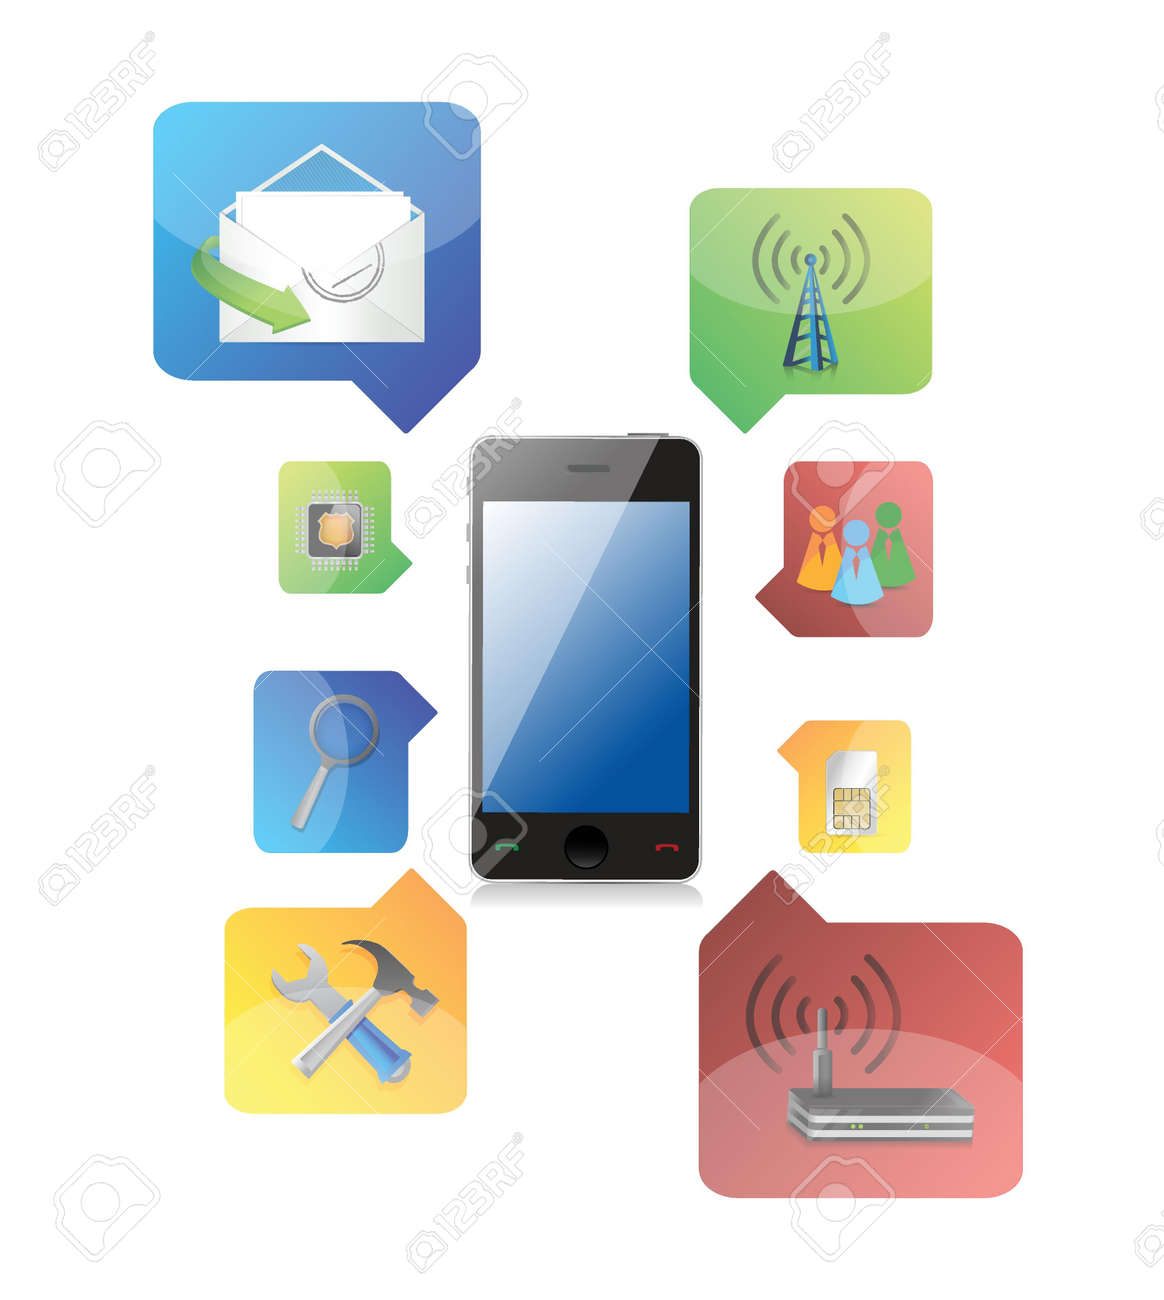 smart phone with icons illustration design on white background Stock Vector - 18063772